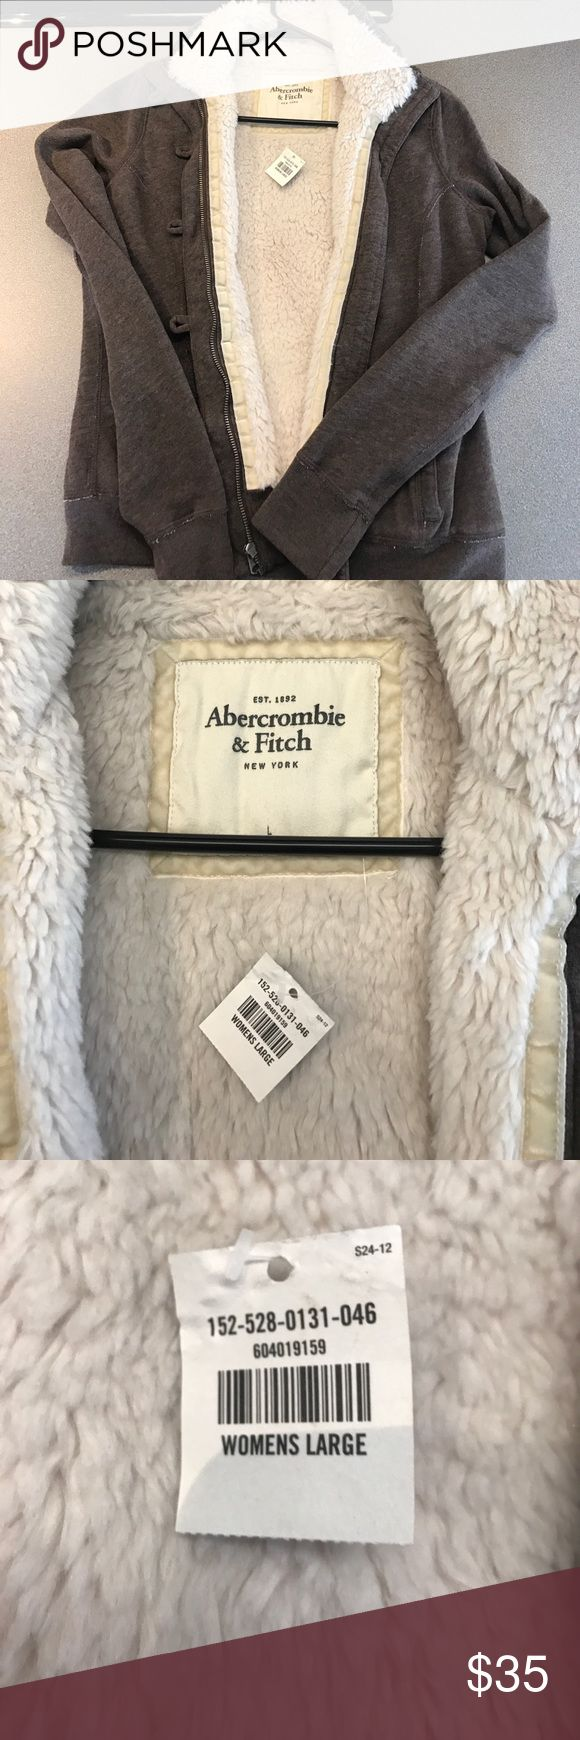 Abercrombie and fitch Women's large cotton jacket. Abercrombie and fitch Women's large brown cotton lined jacket. Brand new with tag. Comes from a smoke free home. Abercrombie & Fitch Jackets & Coats